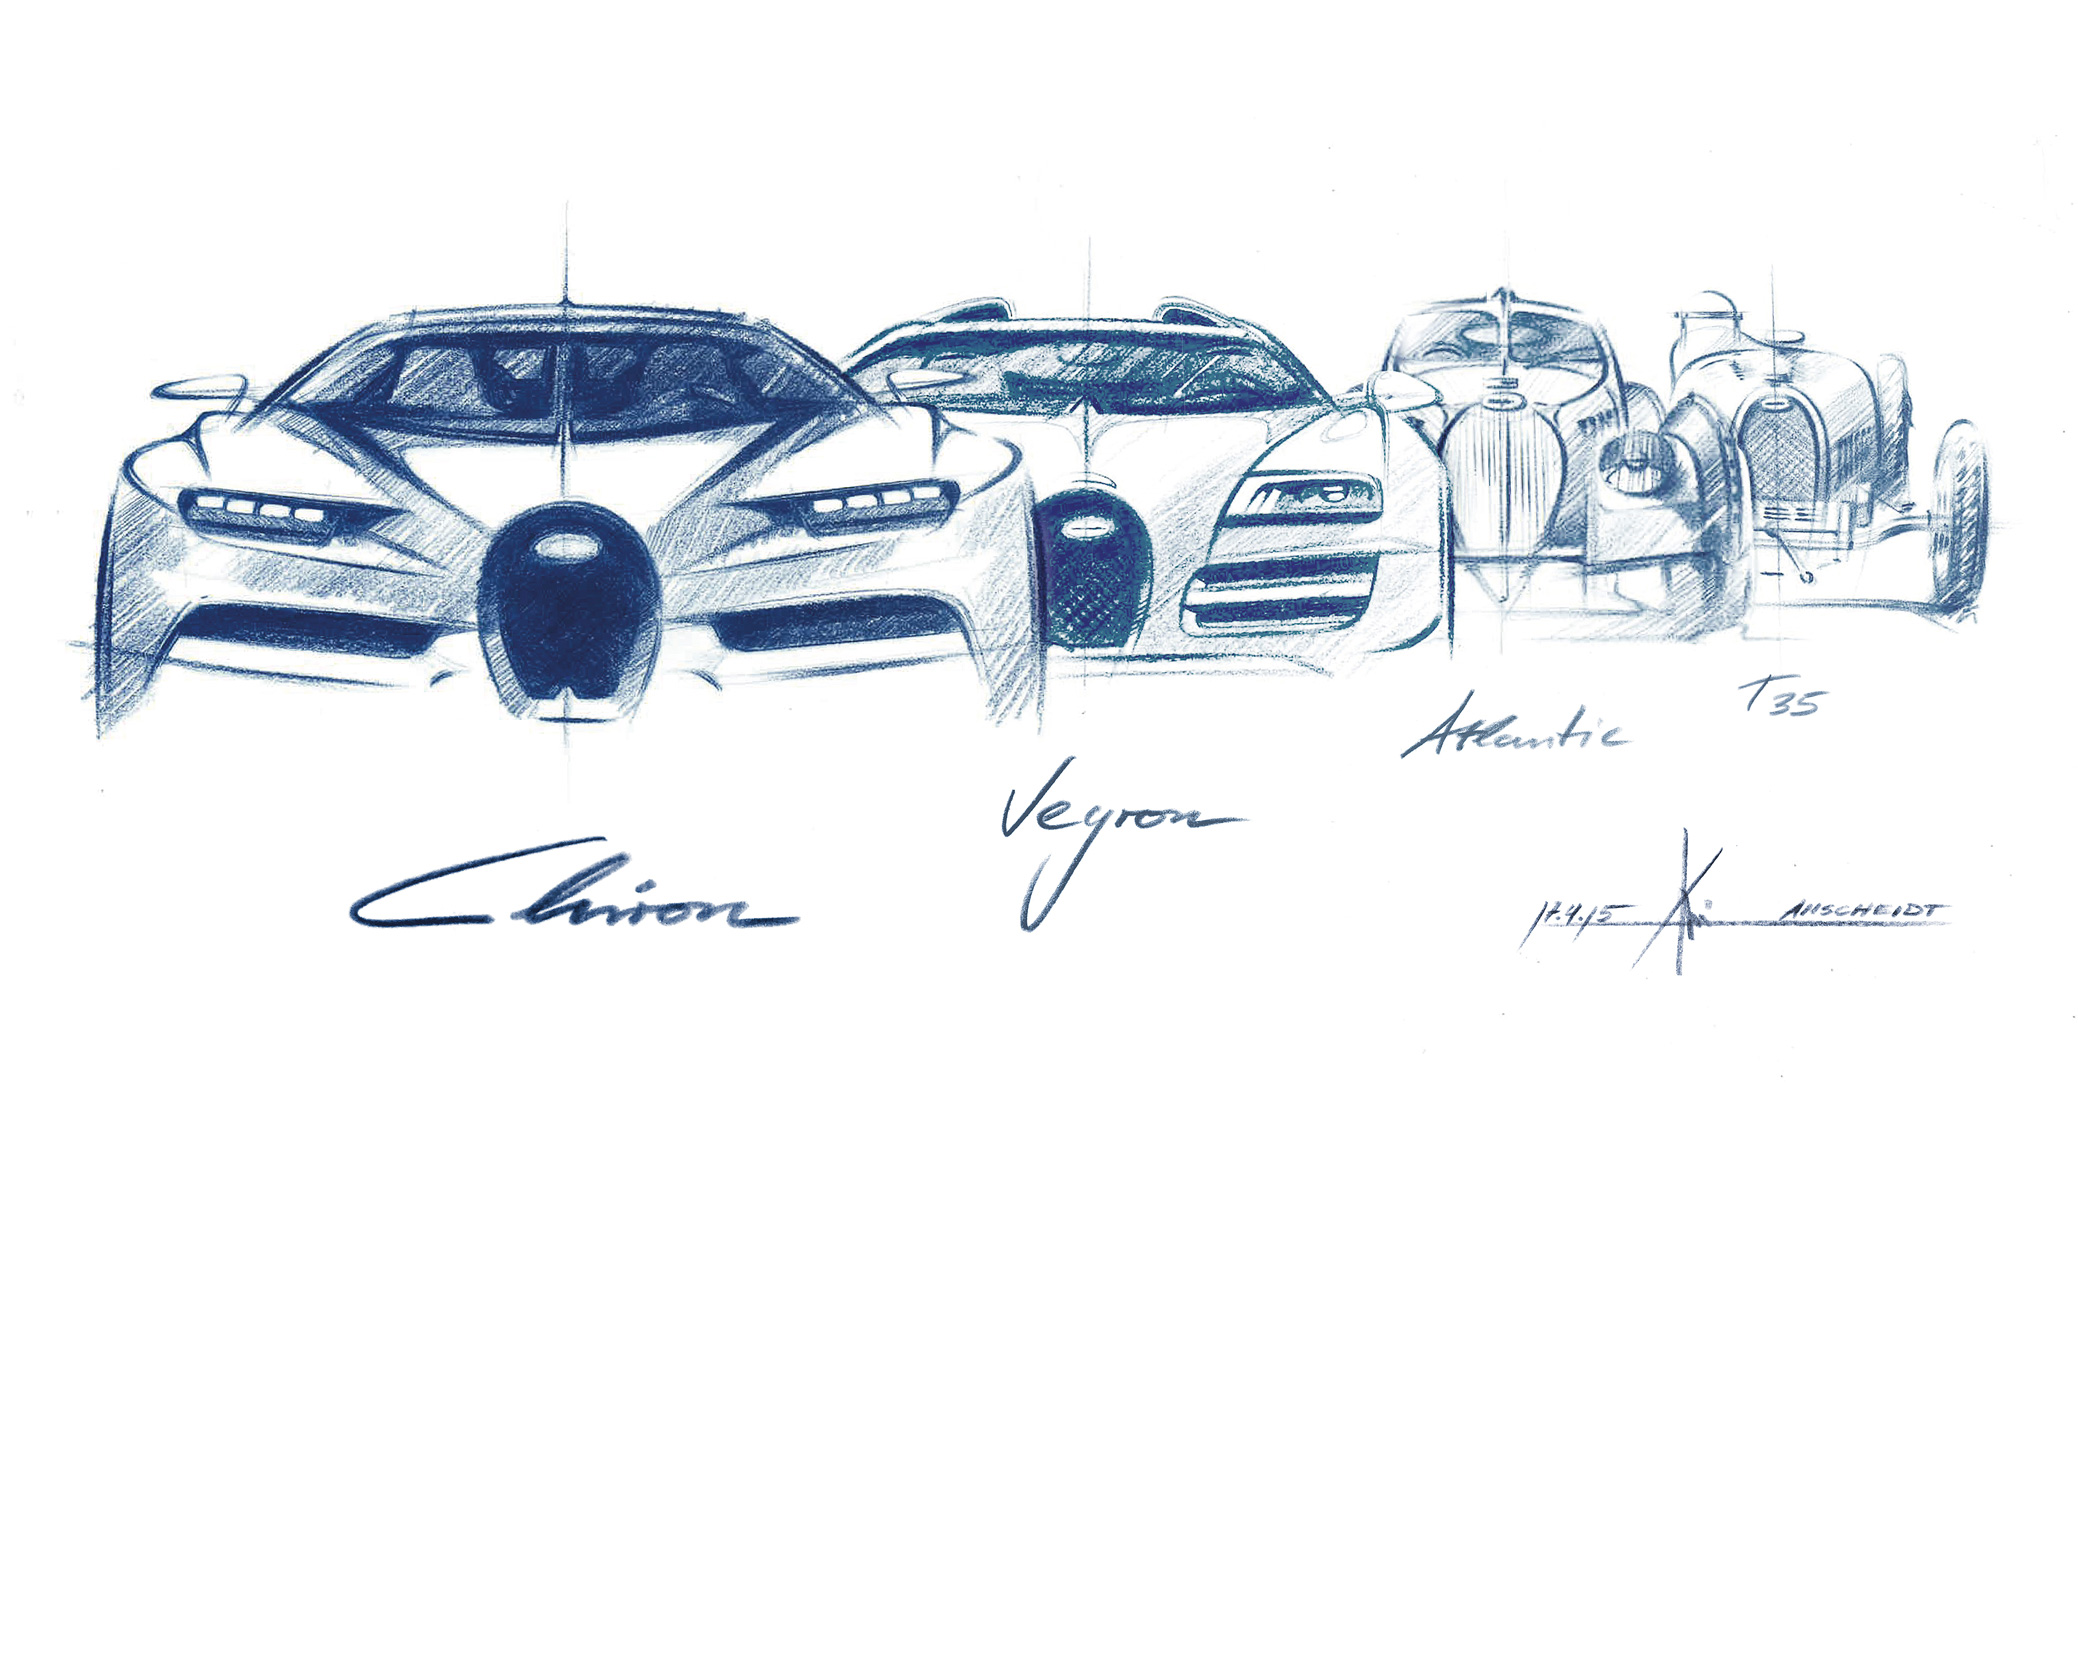 Then and Now: Phillips x Bugatti